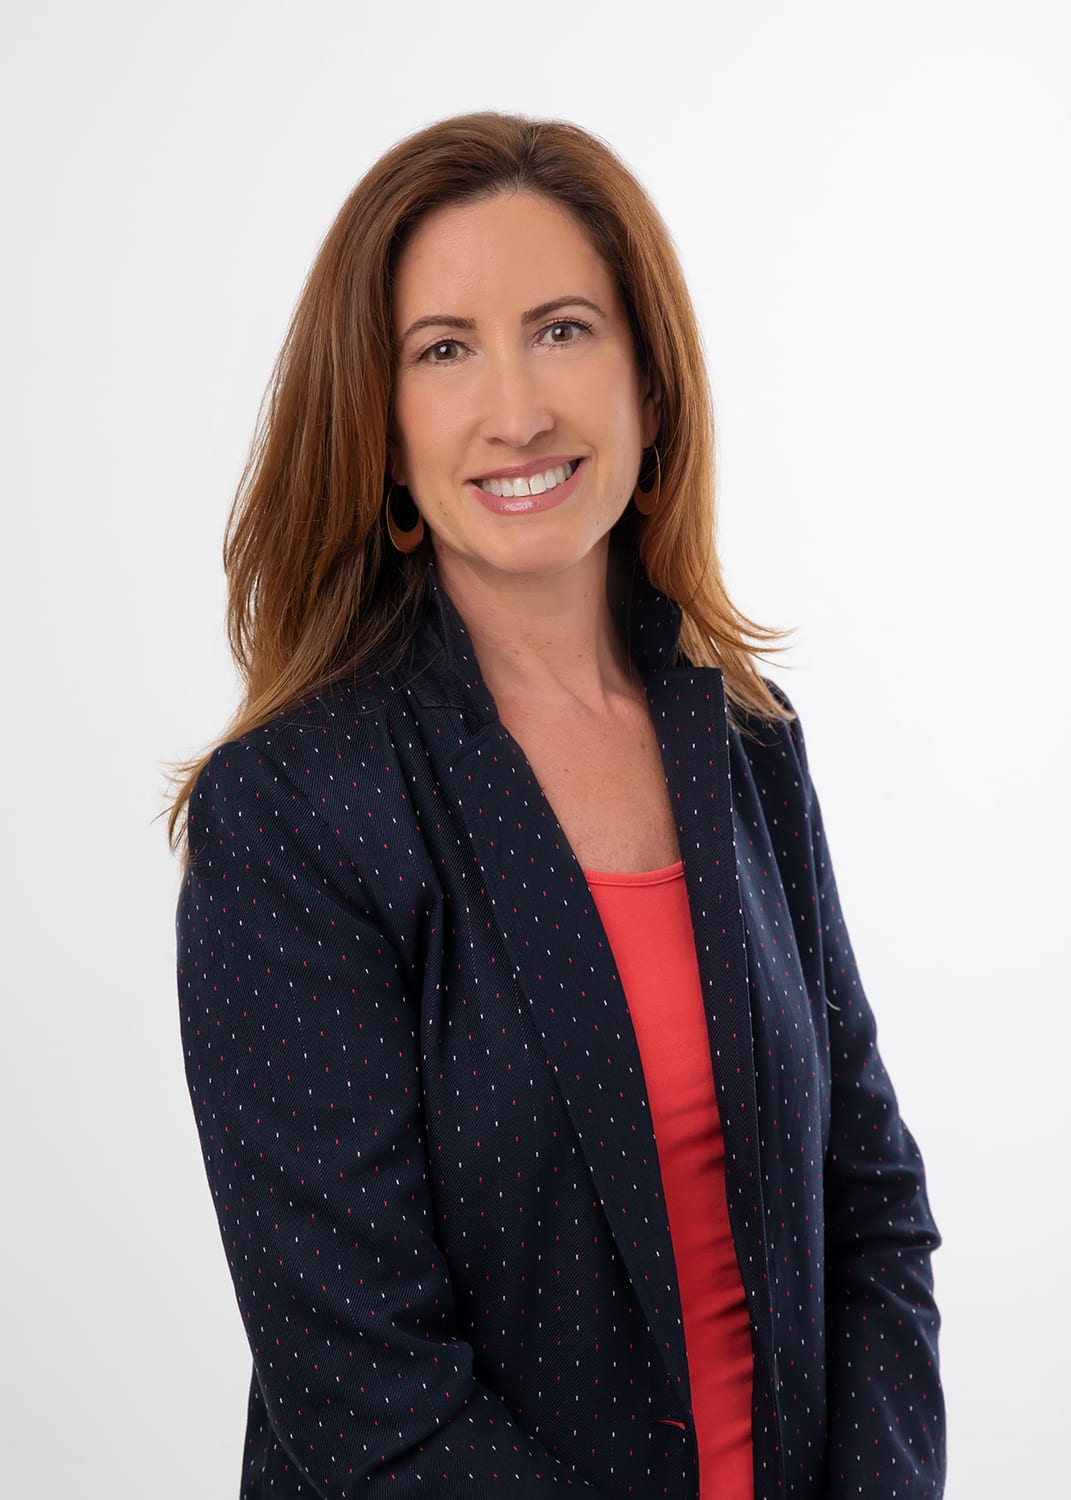 Attila Security Adds Kathleen Booth as VP of Marketing featured image